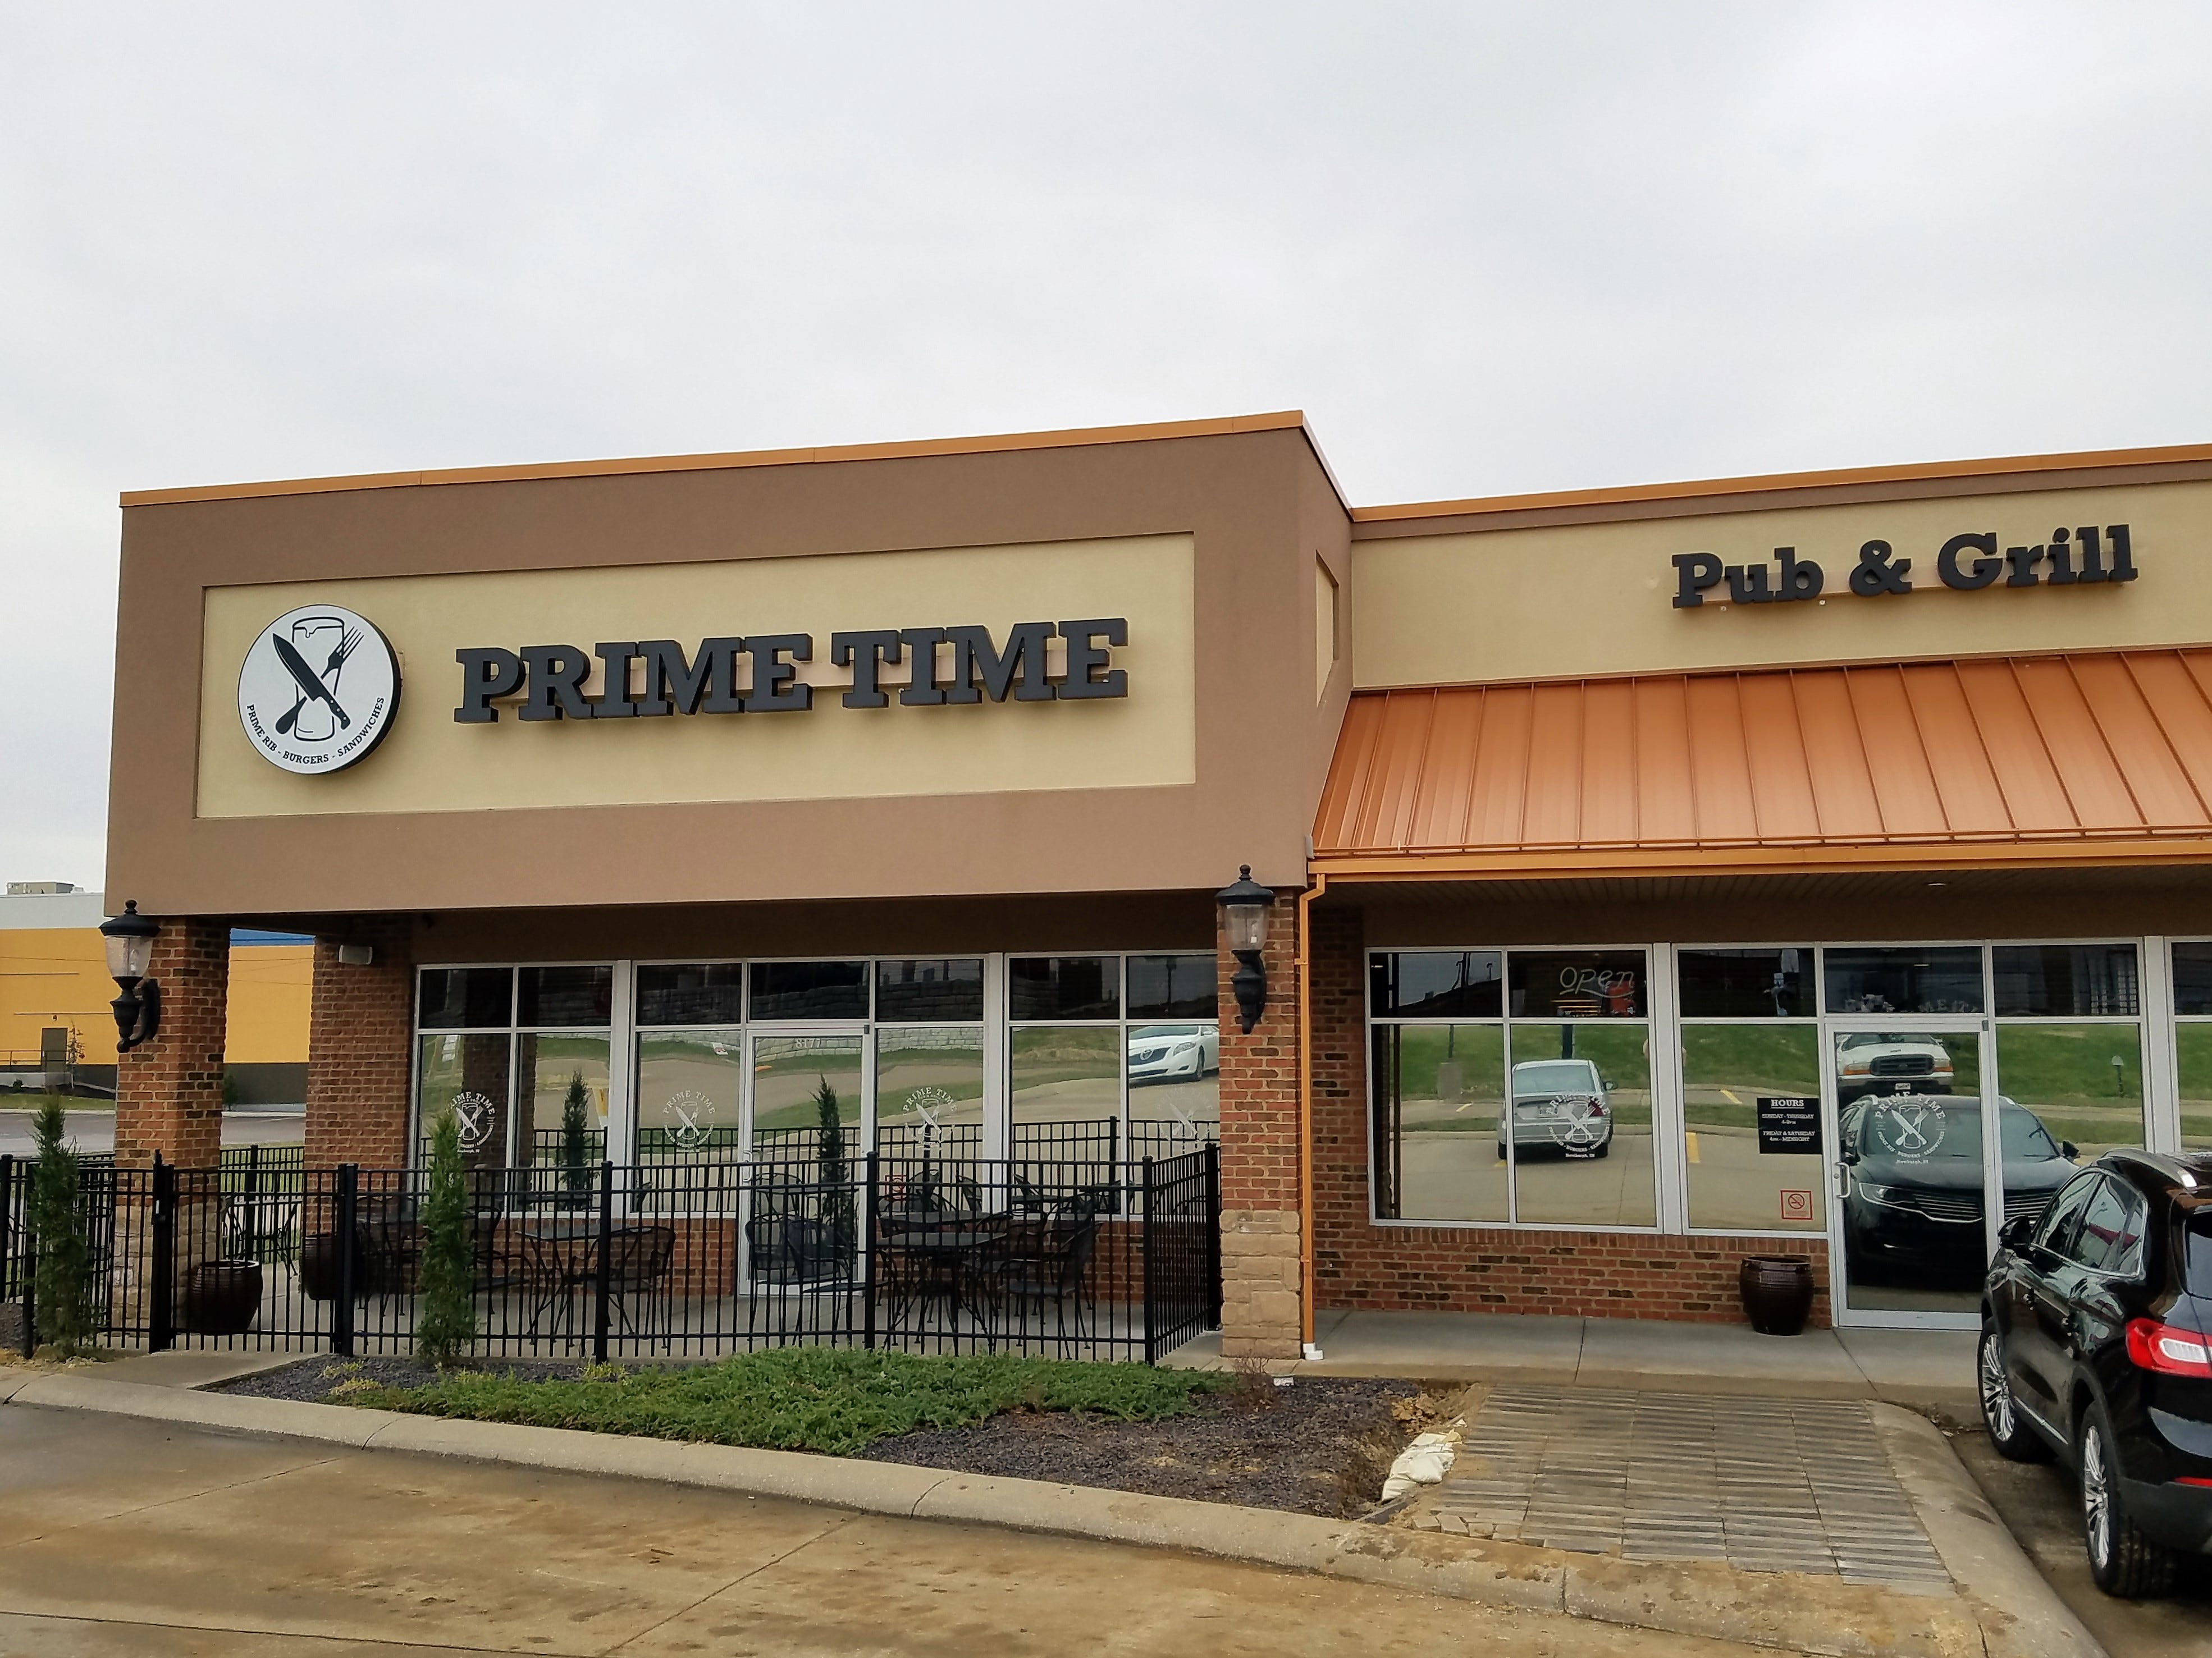 The Prime Time Pub & Grill is located in the former Beef O'Brady's location on Bell Oaks Drive in Newburgh.